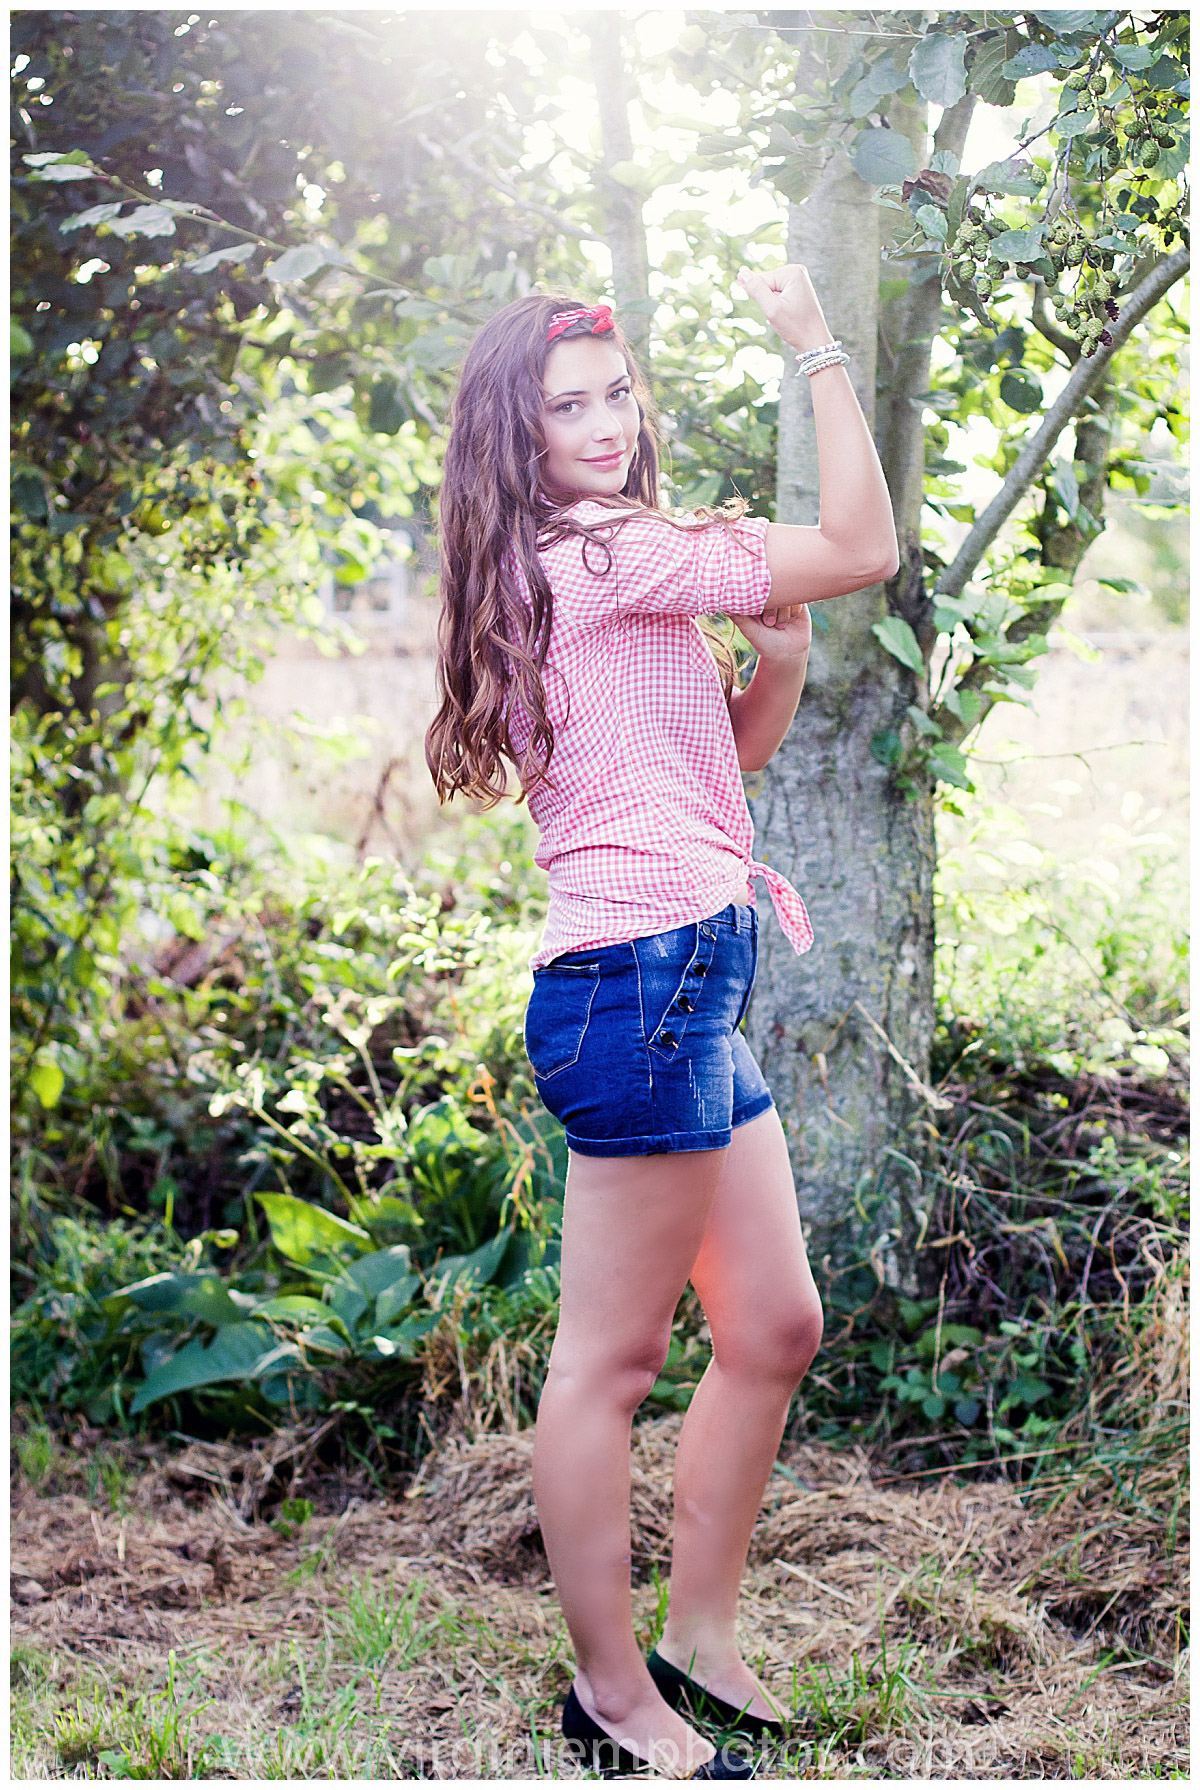 S ance photo virginie m photos photographe grossesse for Shooting photo exterieur foret